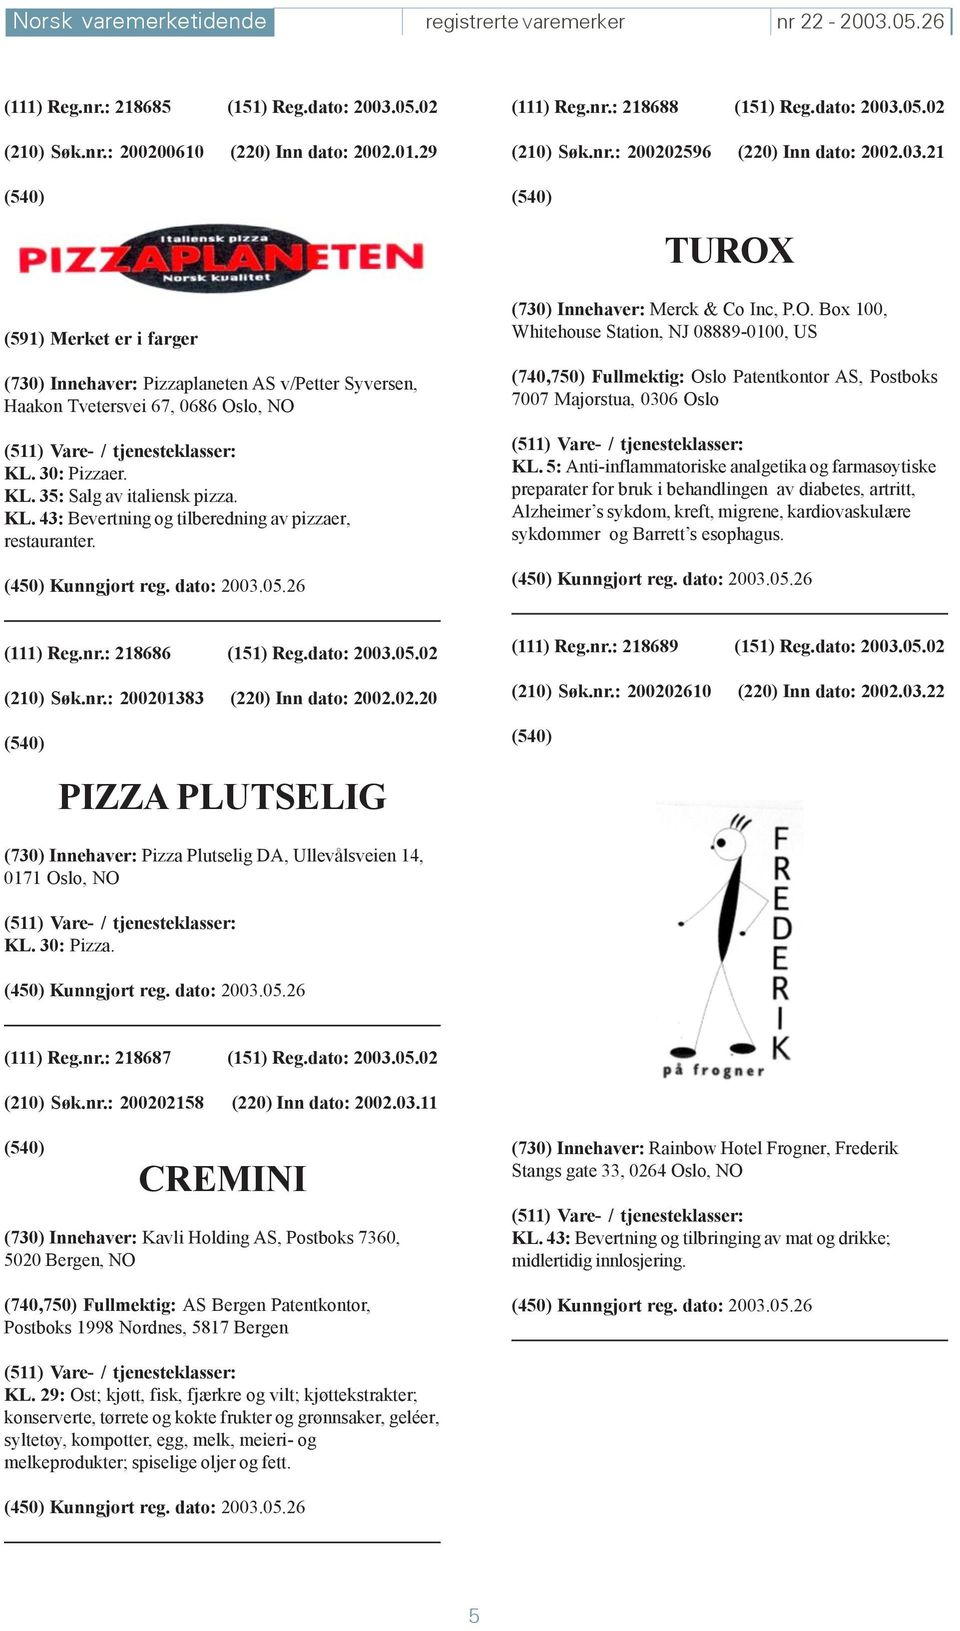 30: Pizzaer. KL. 35: Salg av italiensk pizza. KL. 43: Bevertning og tilberedning av pizzaer, restauranter. (730) Innehaver: Merck & Co Inc, P.O.